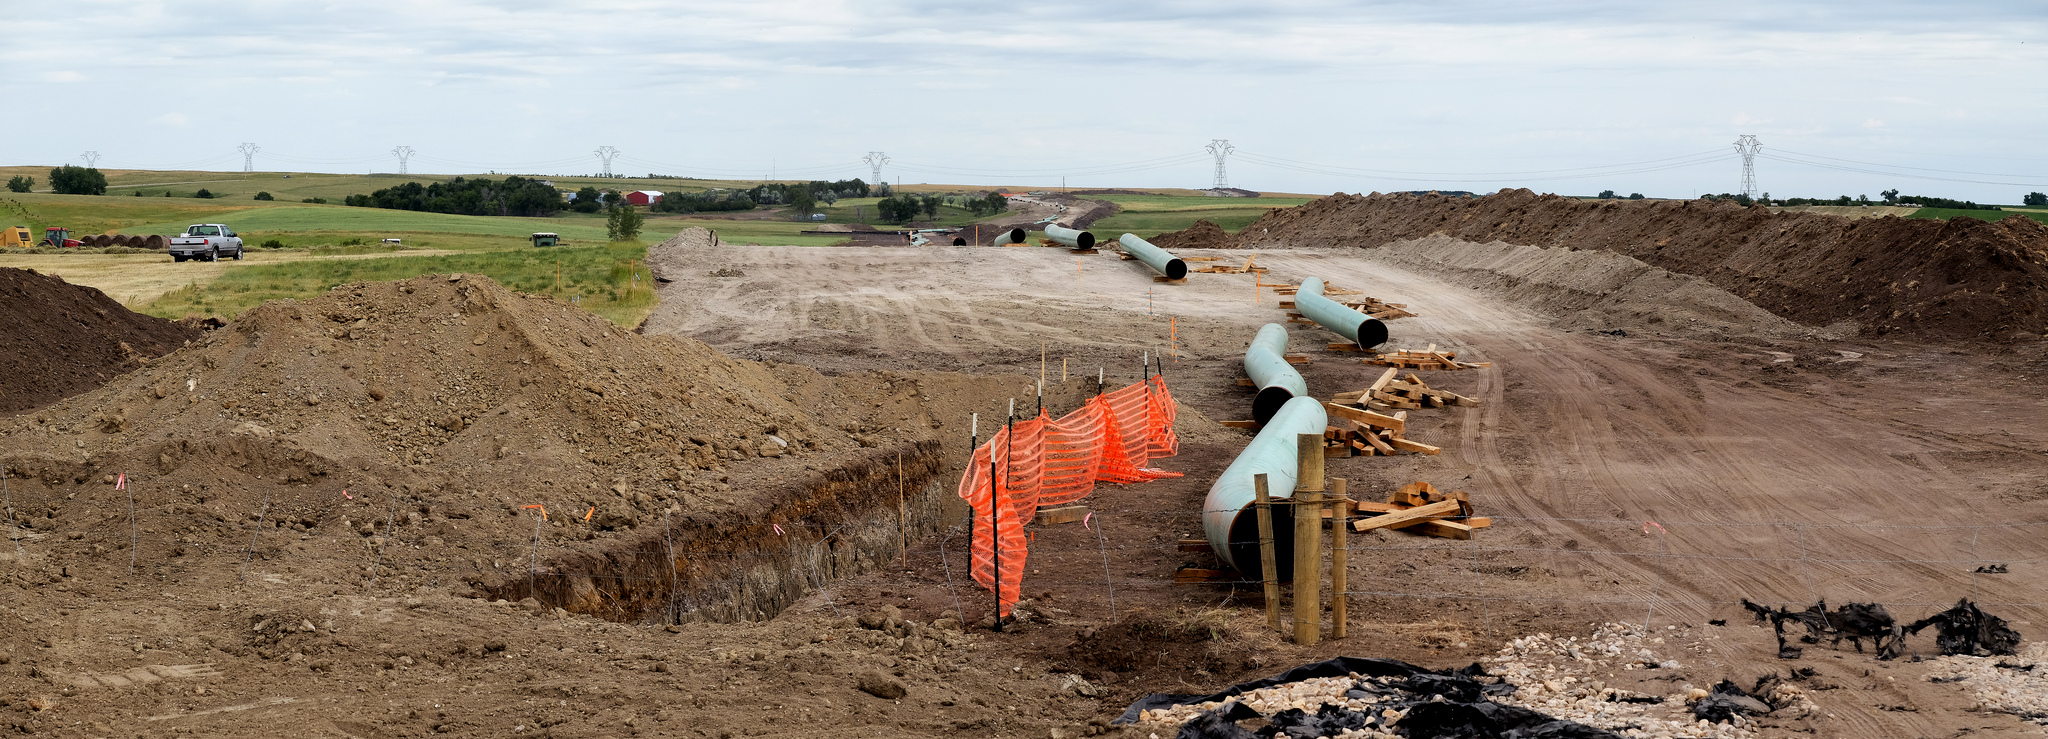 TransCanada says in a statement that pipelines in the area currently don't have enough capacity to handle growing production. (Photo: Lars Plougmann/ Flickr)